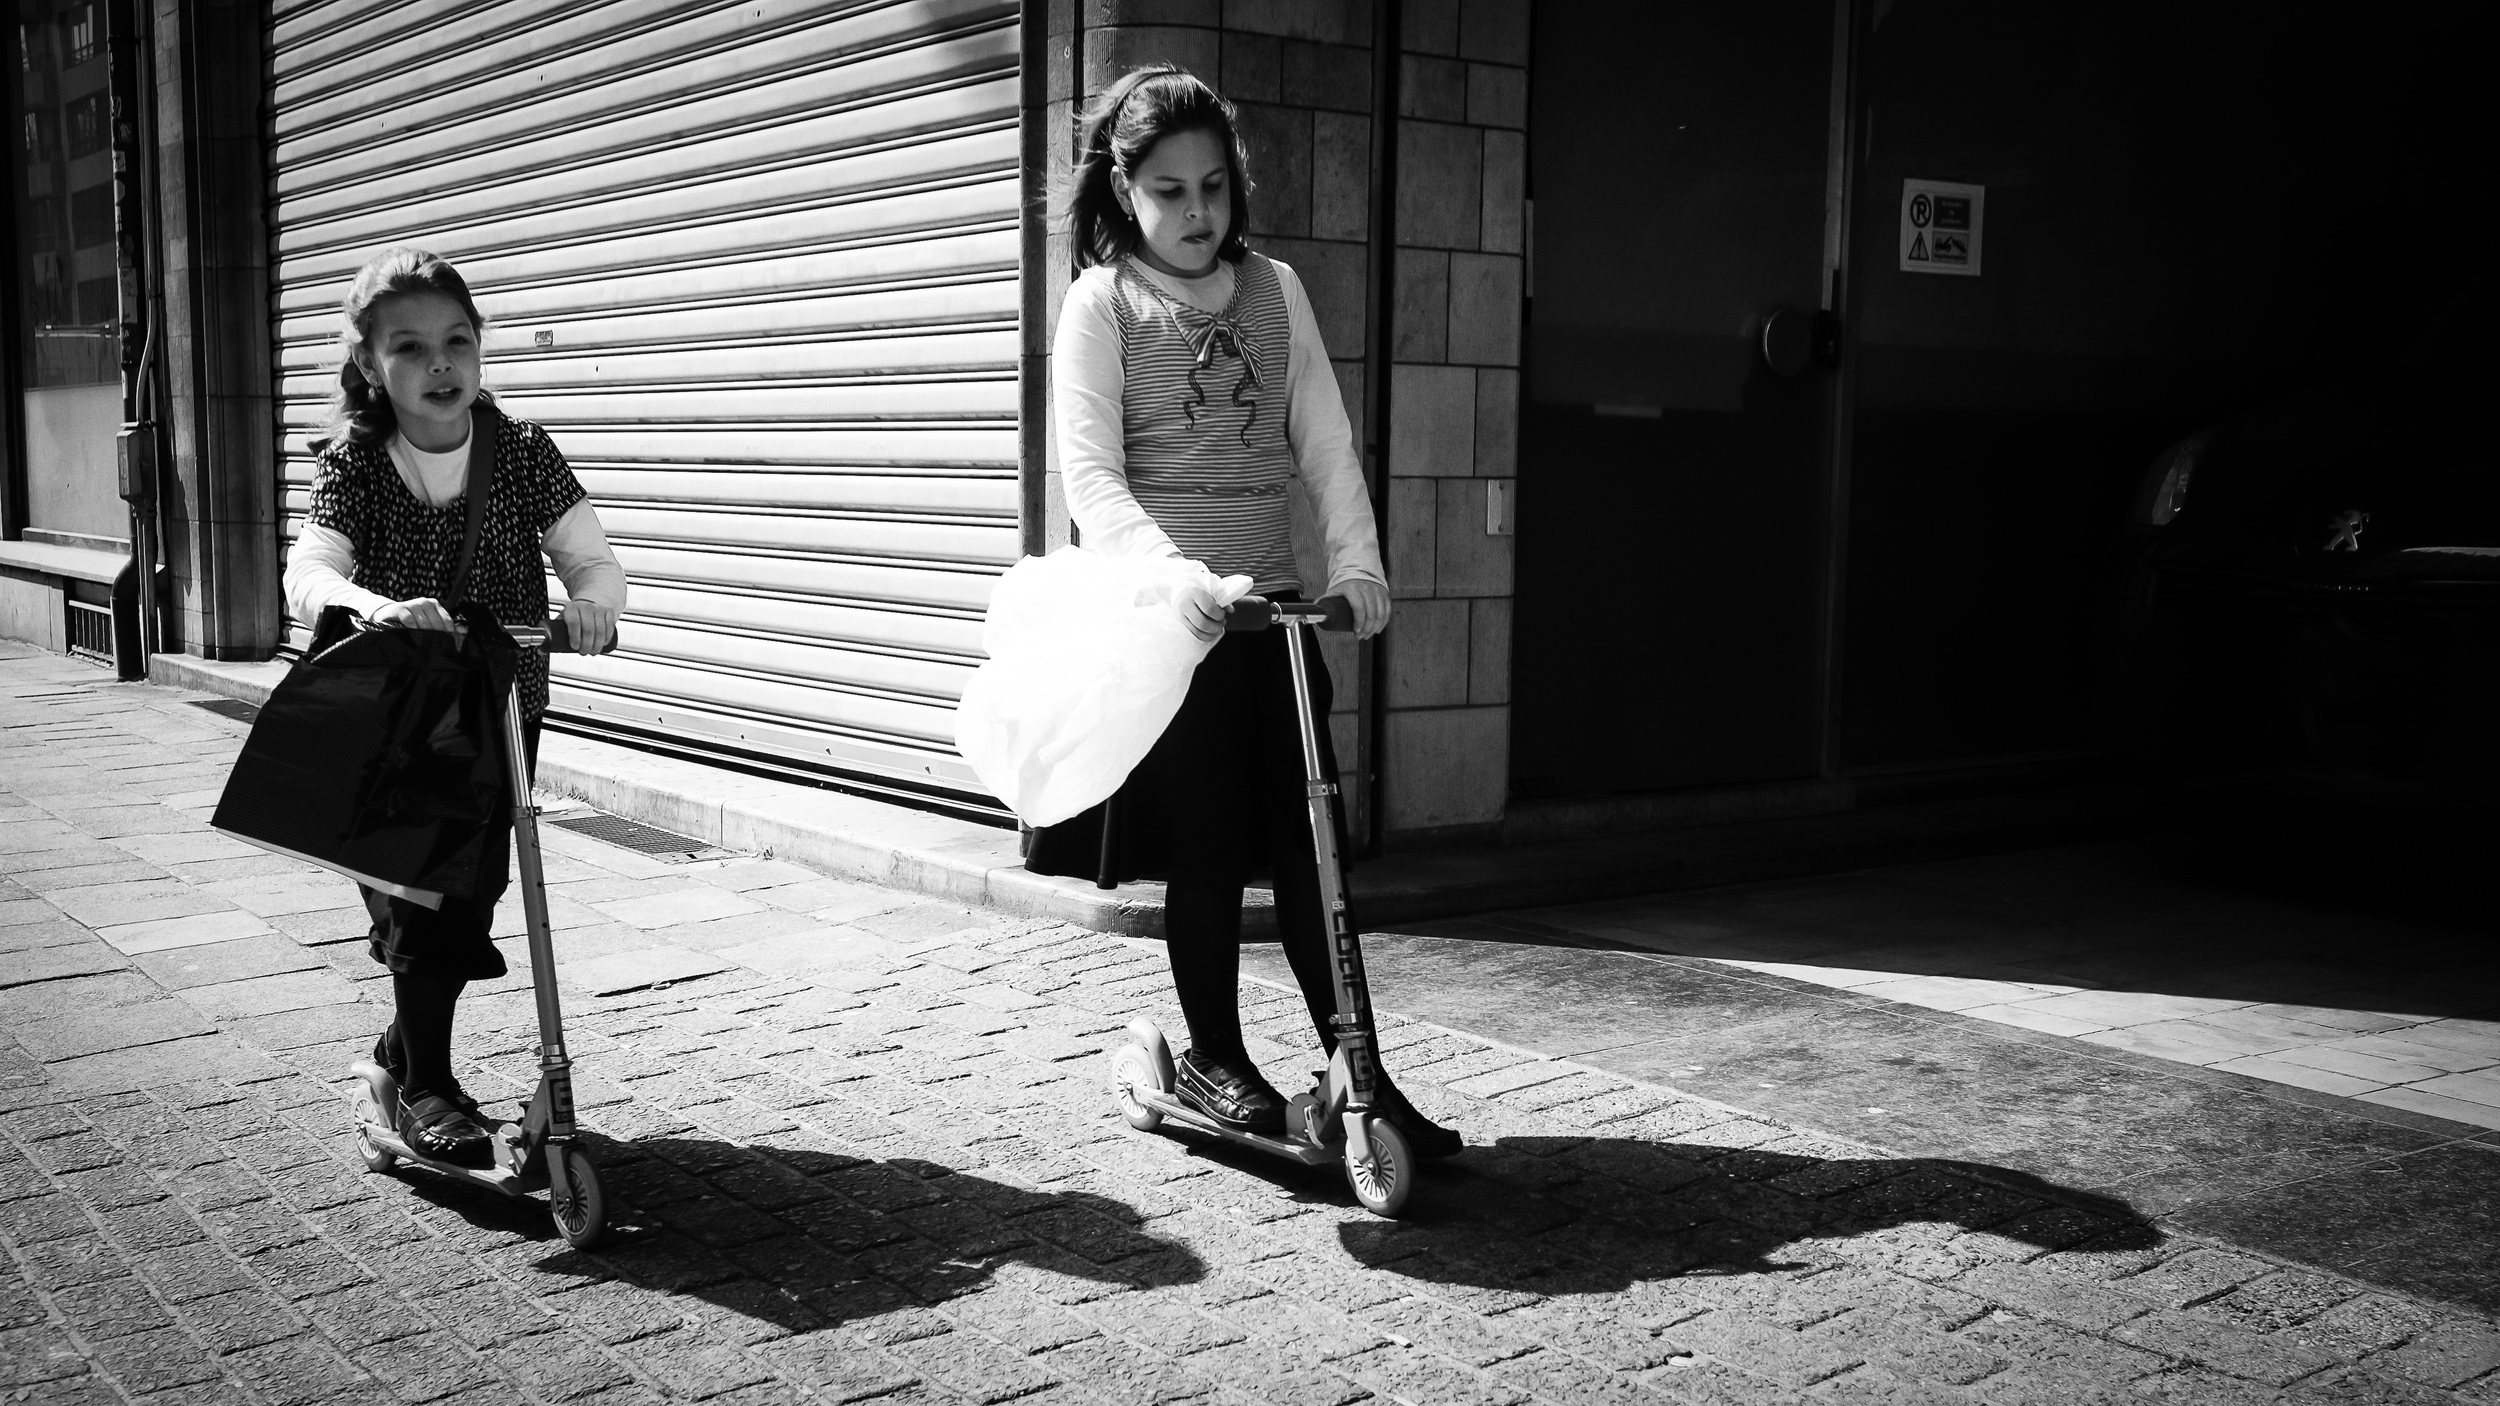 Teenage girls and little children  (click to enlarge)